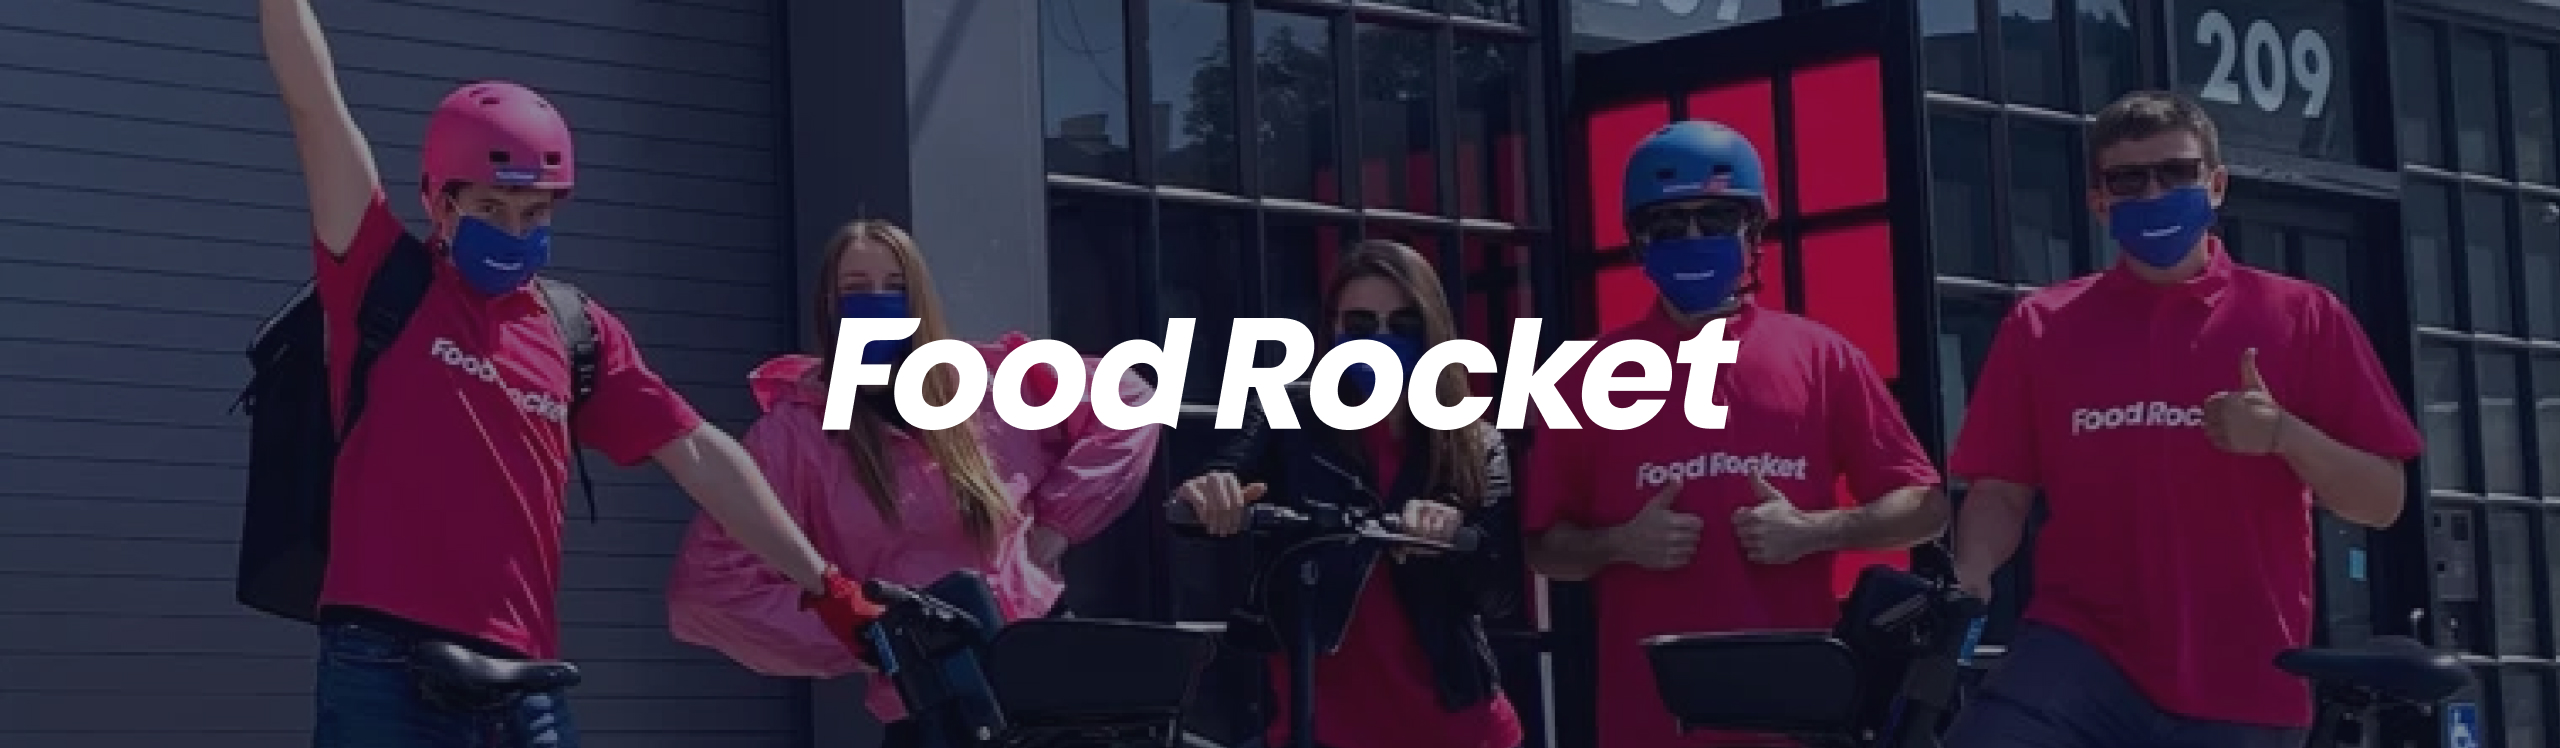 Diffco client FoodRocket raised $2M in funding